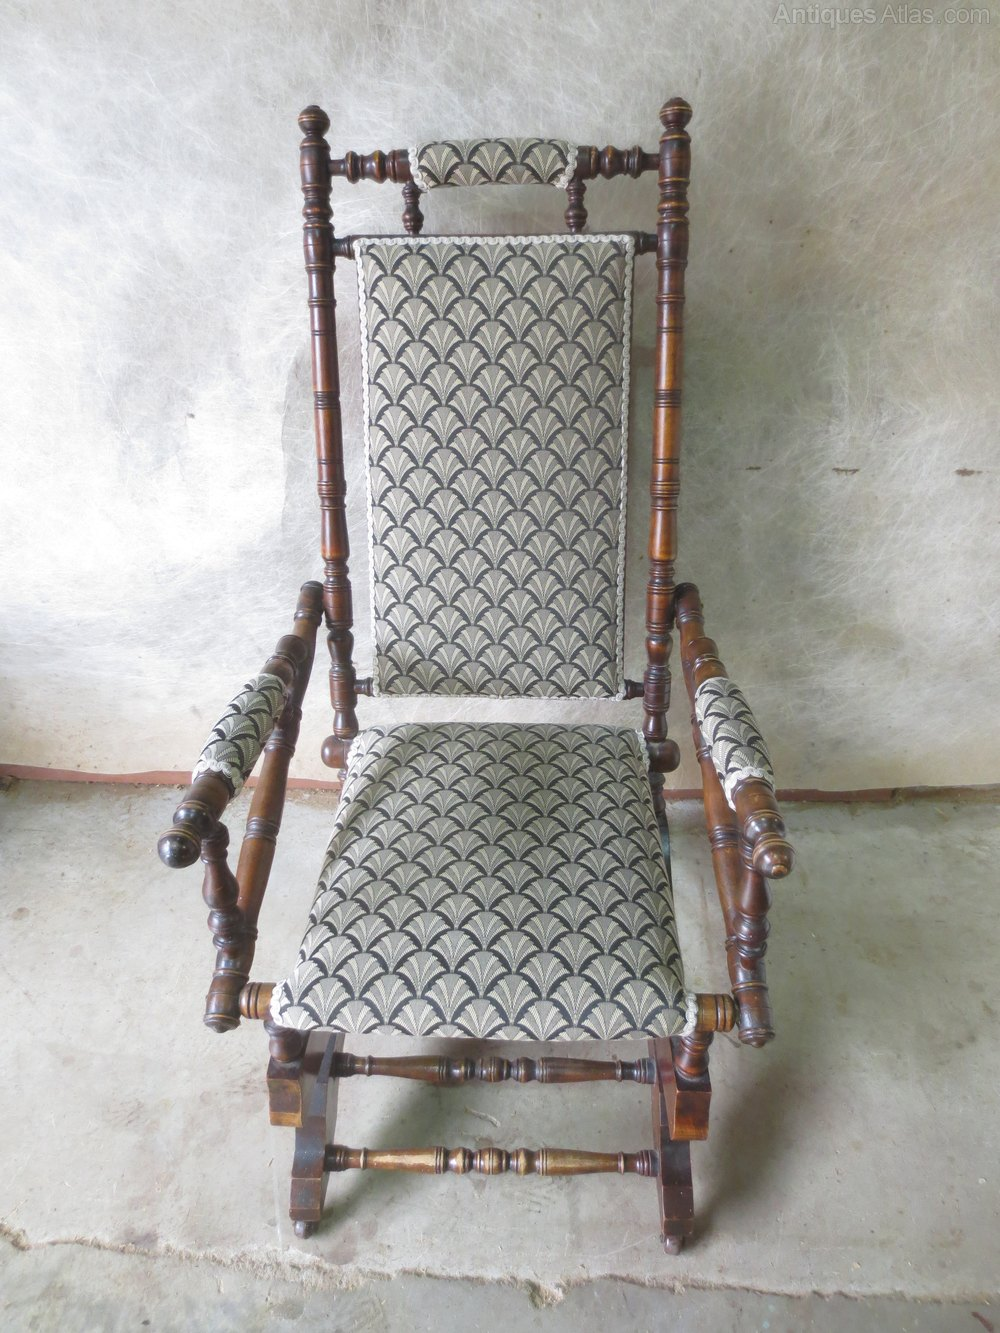 American Rocking Chair Antique ... - American Rocking Chair - Antiques Atlas